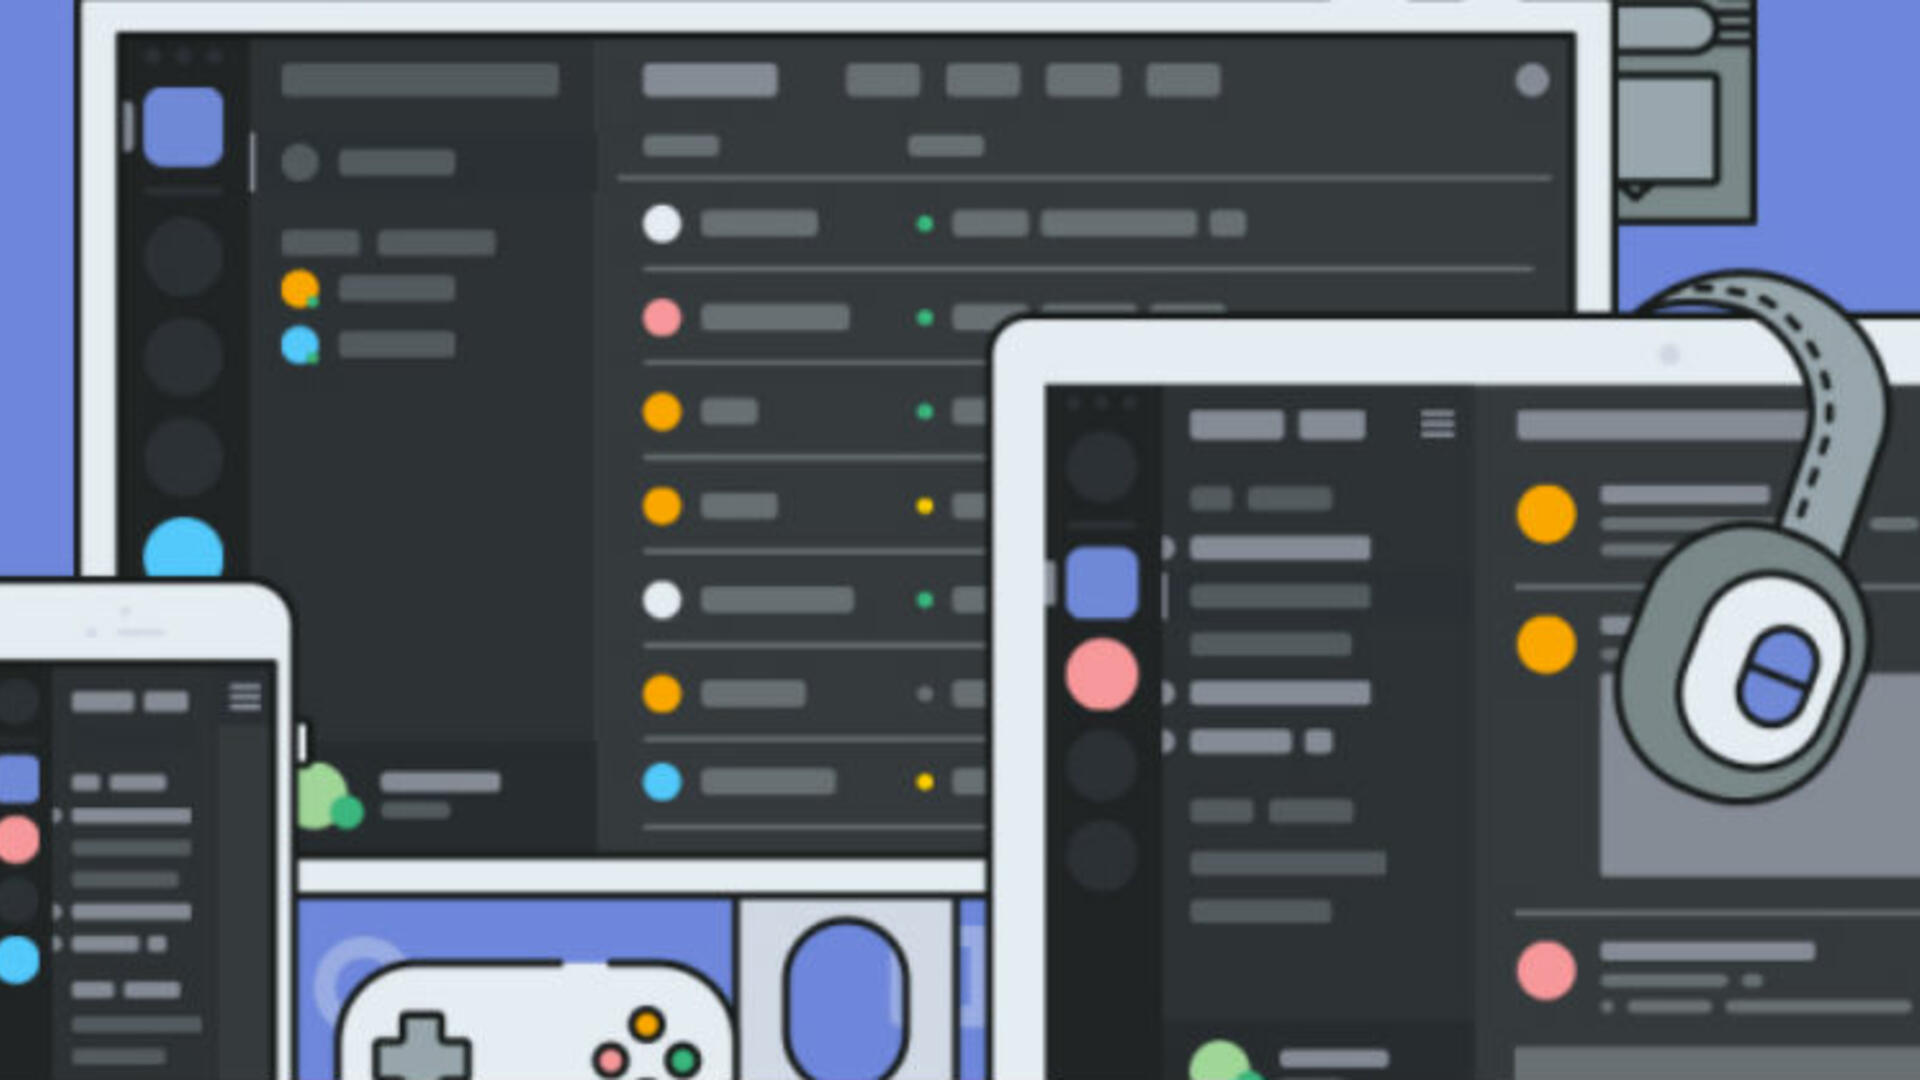 Discord Game Store Comes After Both Epic and Steam With New Revenue Model